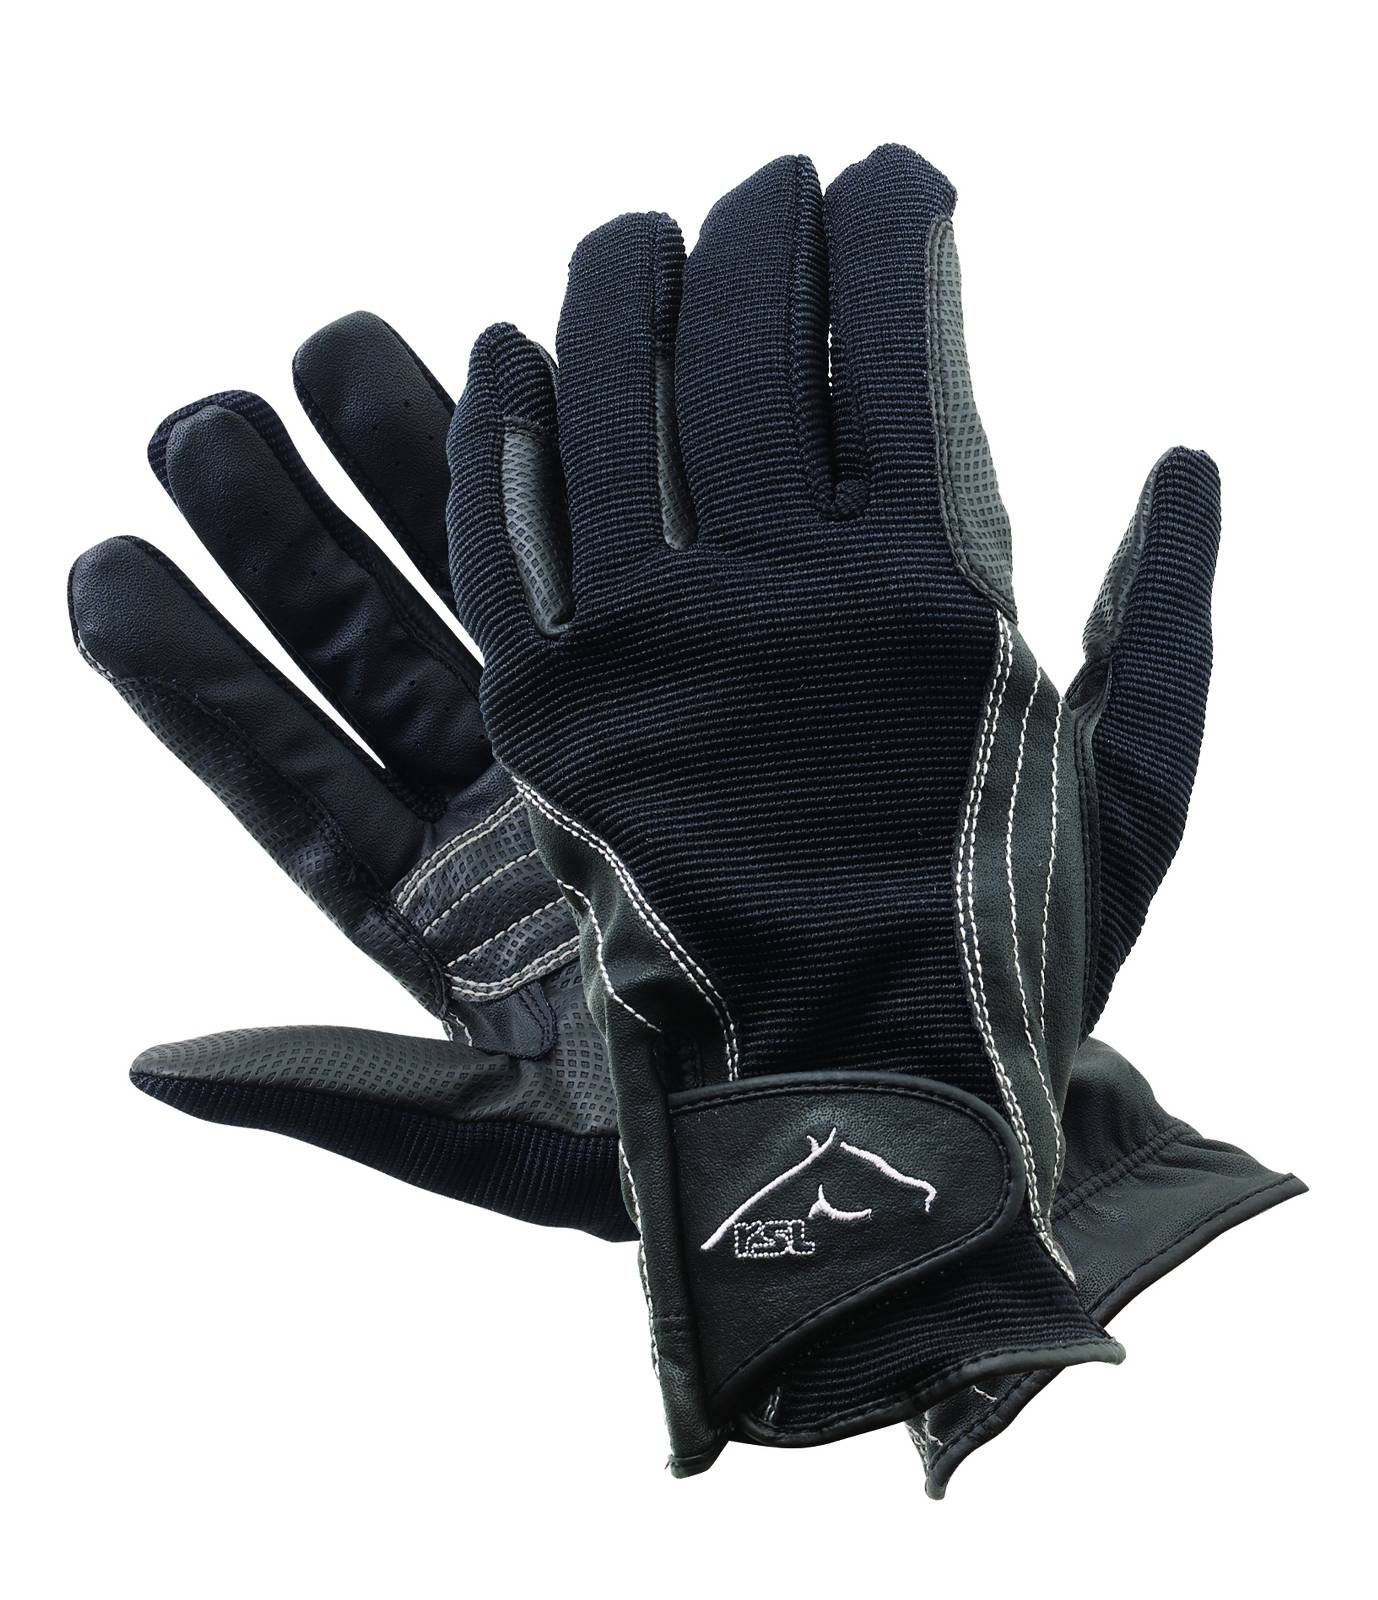 RSL Davos Winter Riding Gloves